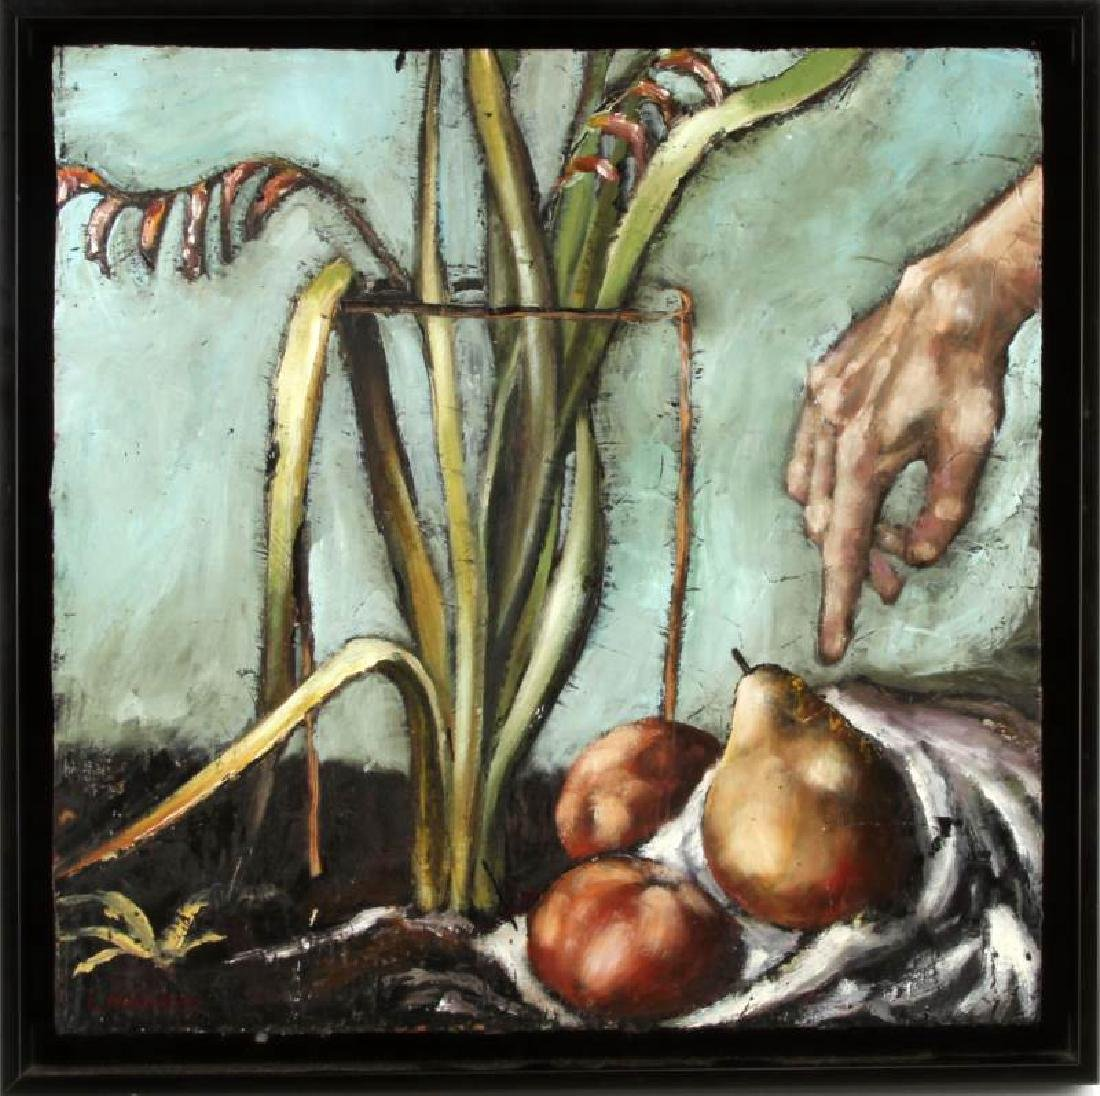 STILL LIFE OIL ON WOOD PAINTING SIGNED CROWDER